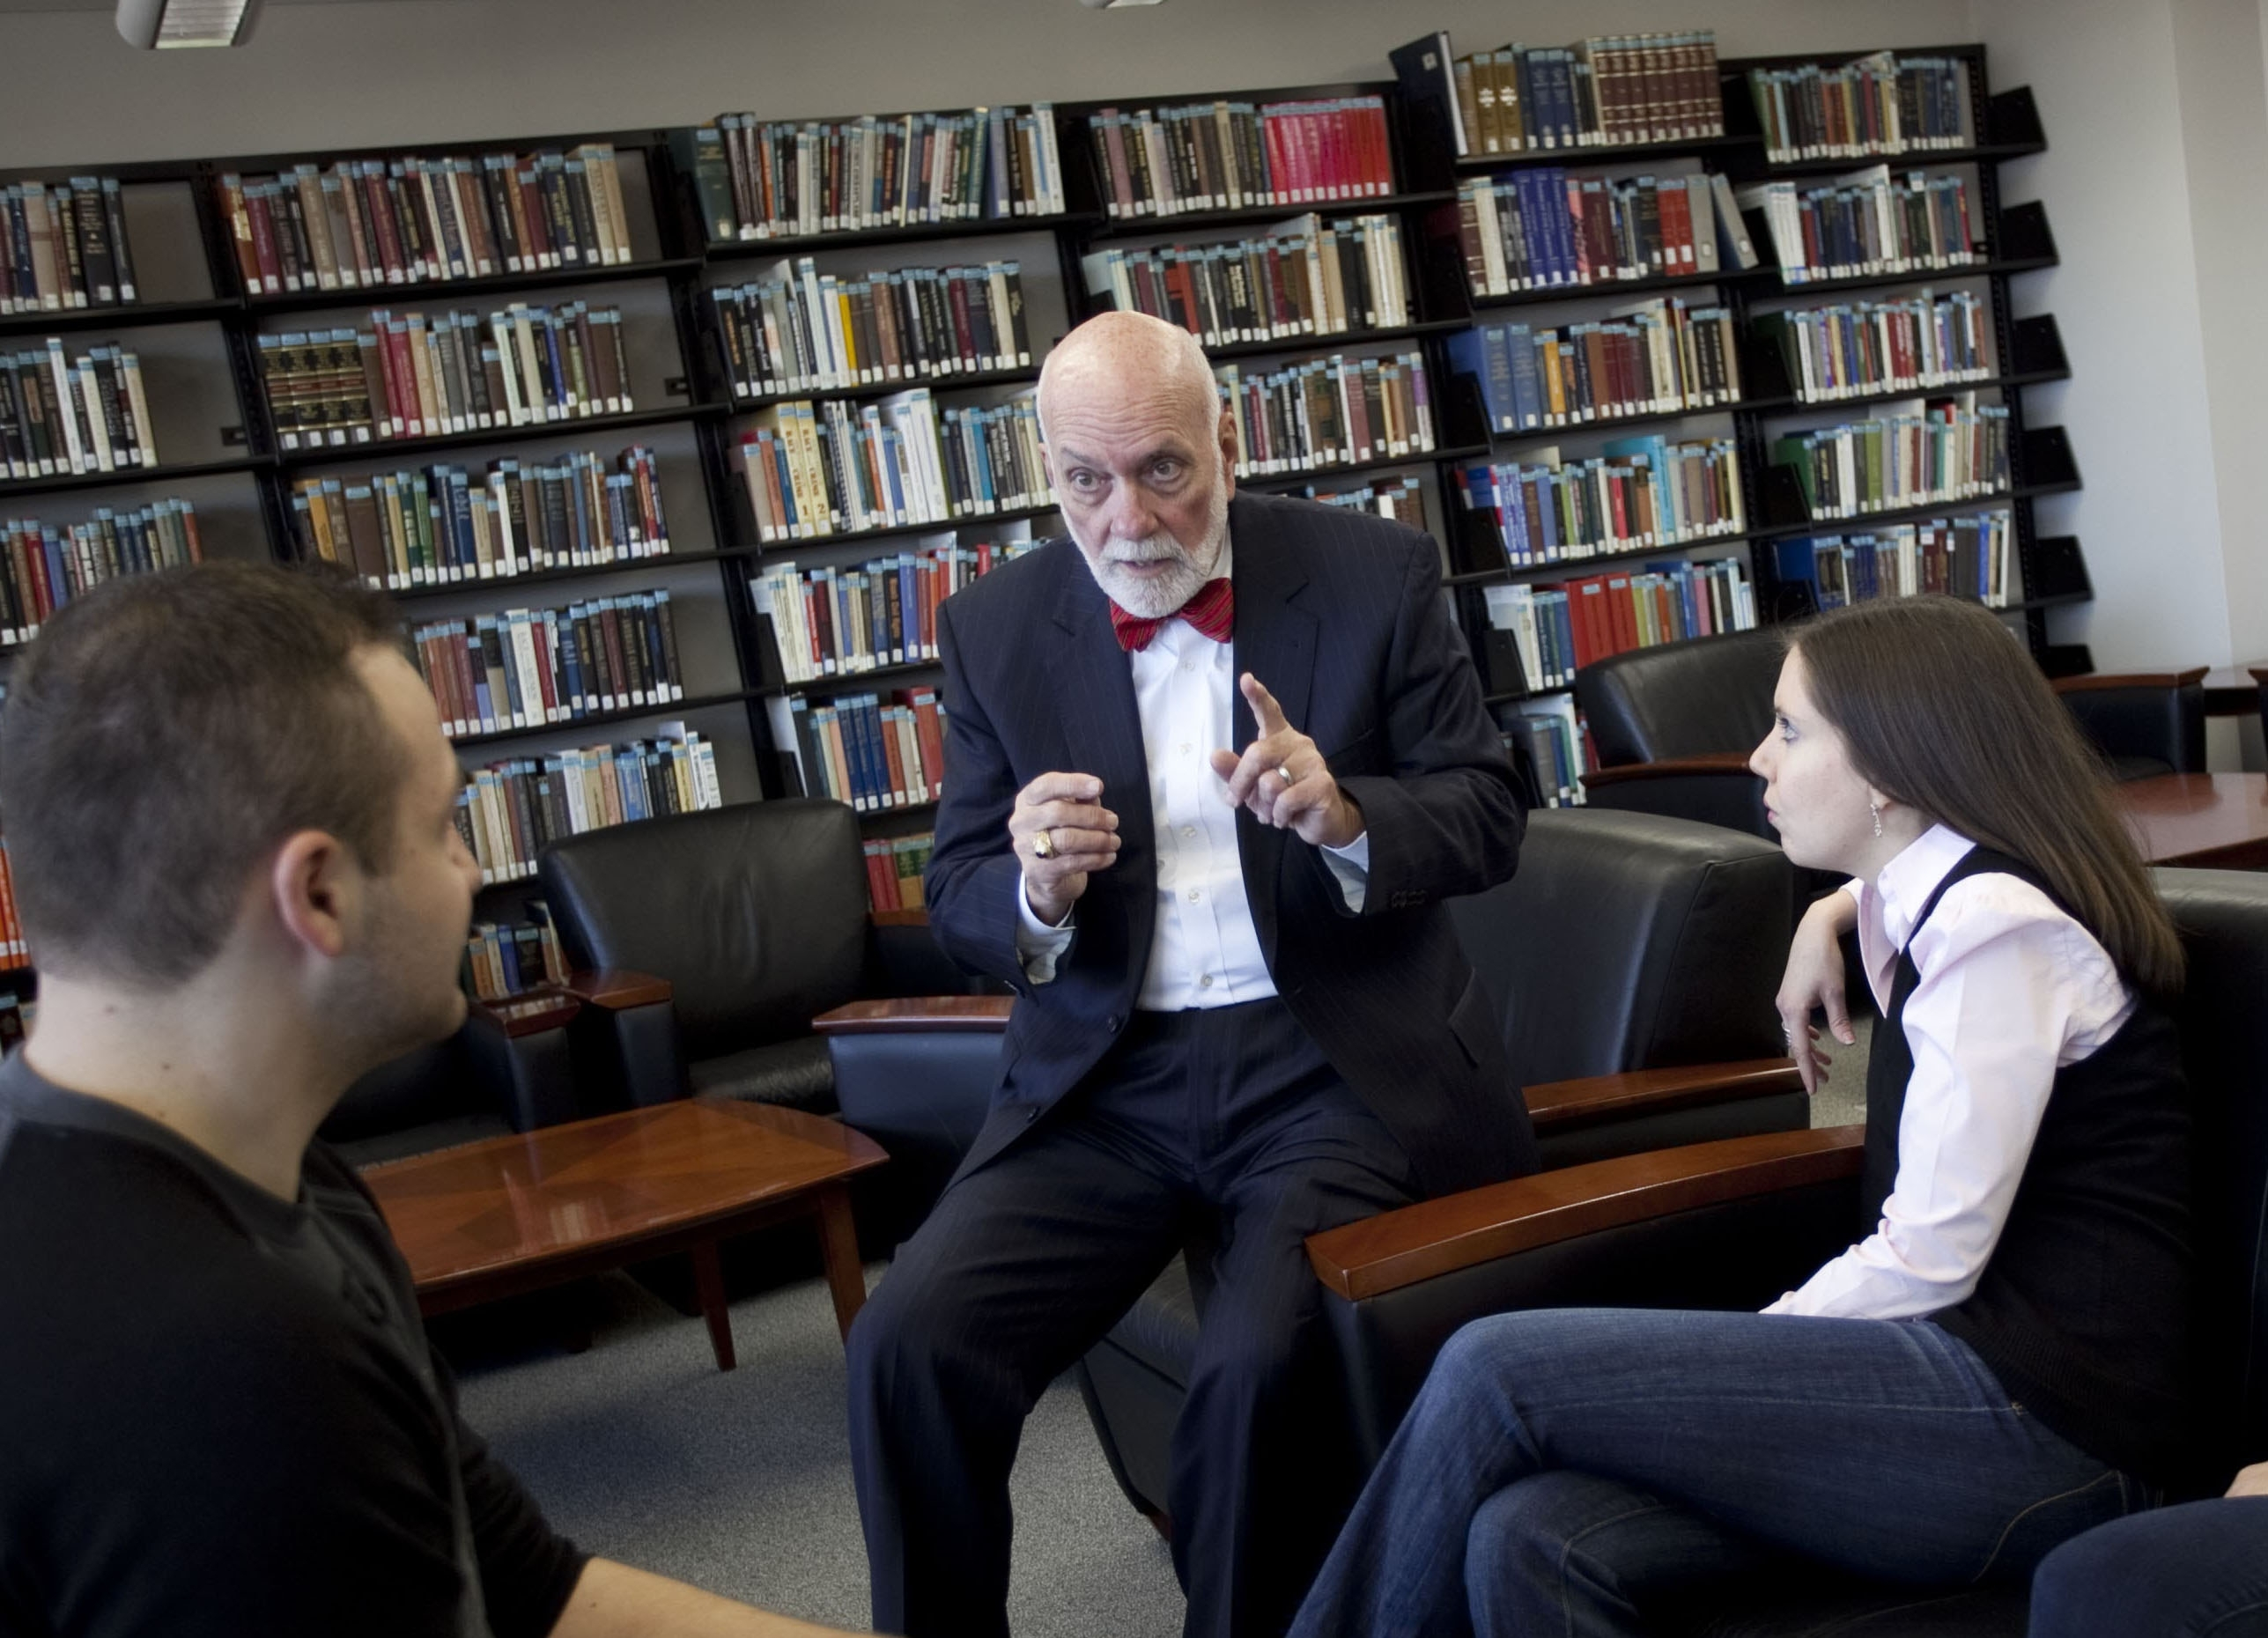 Dean Simons speaking with students in library